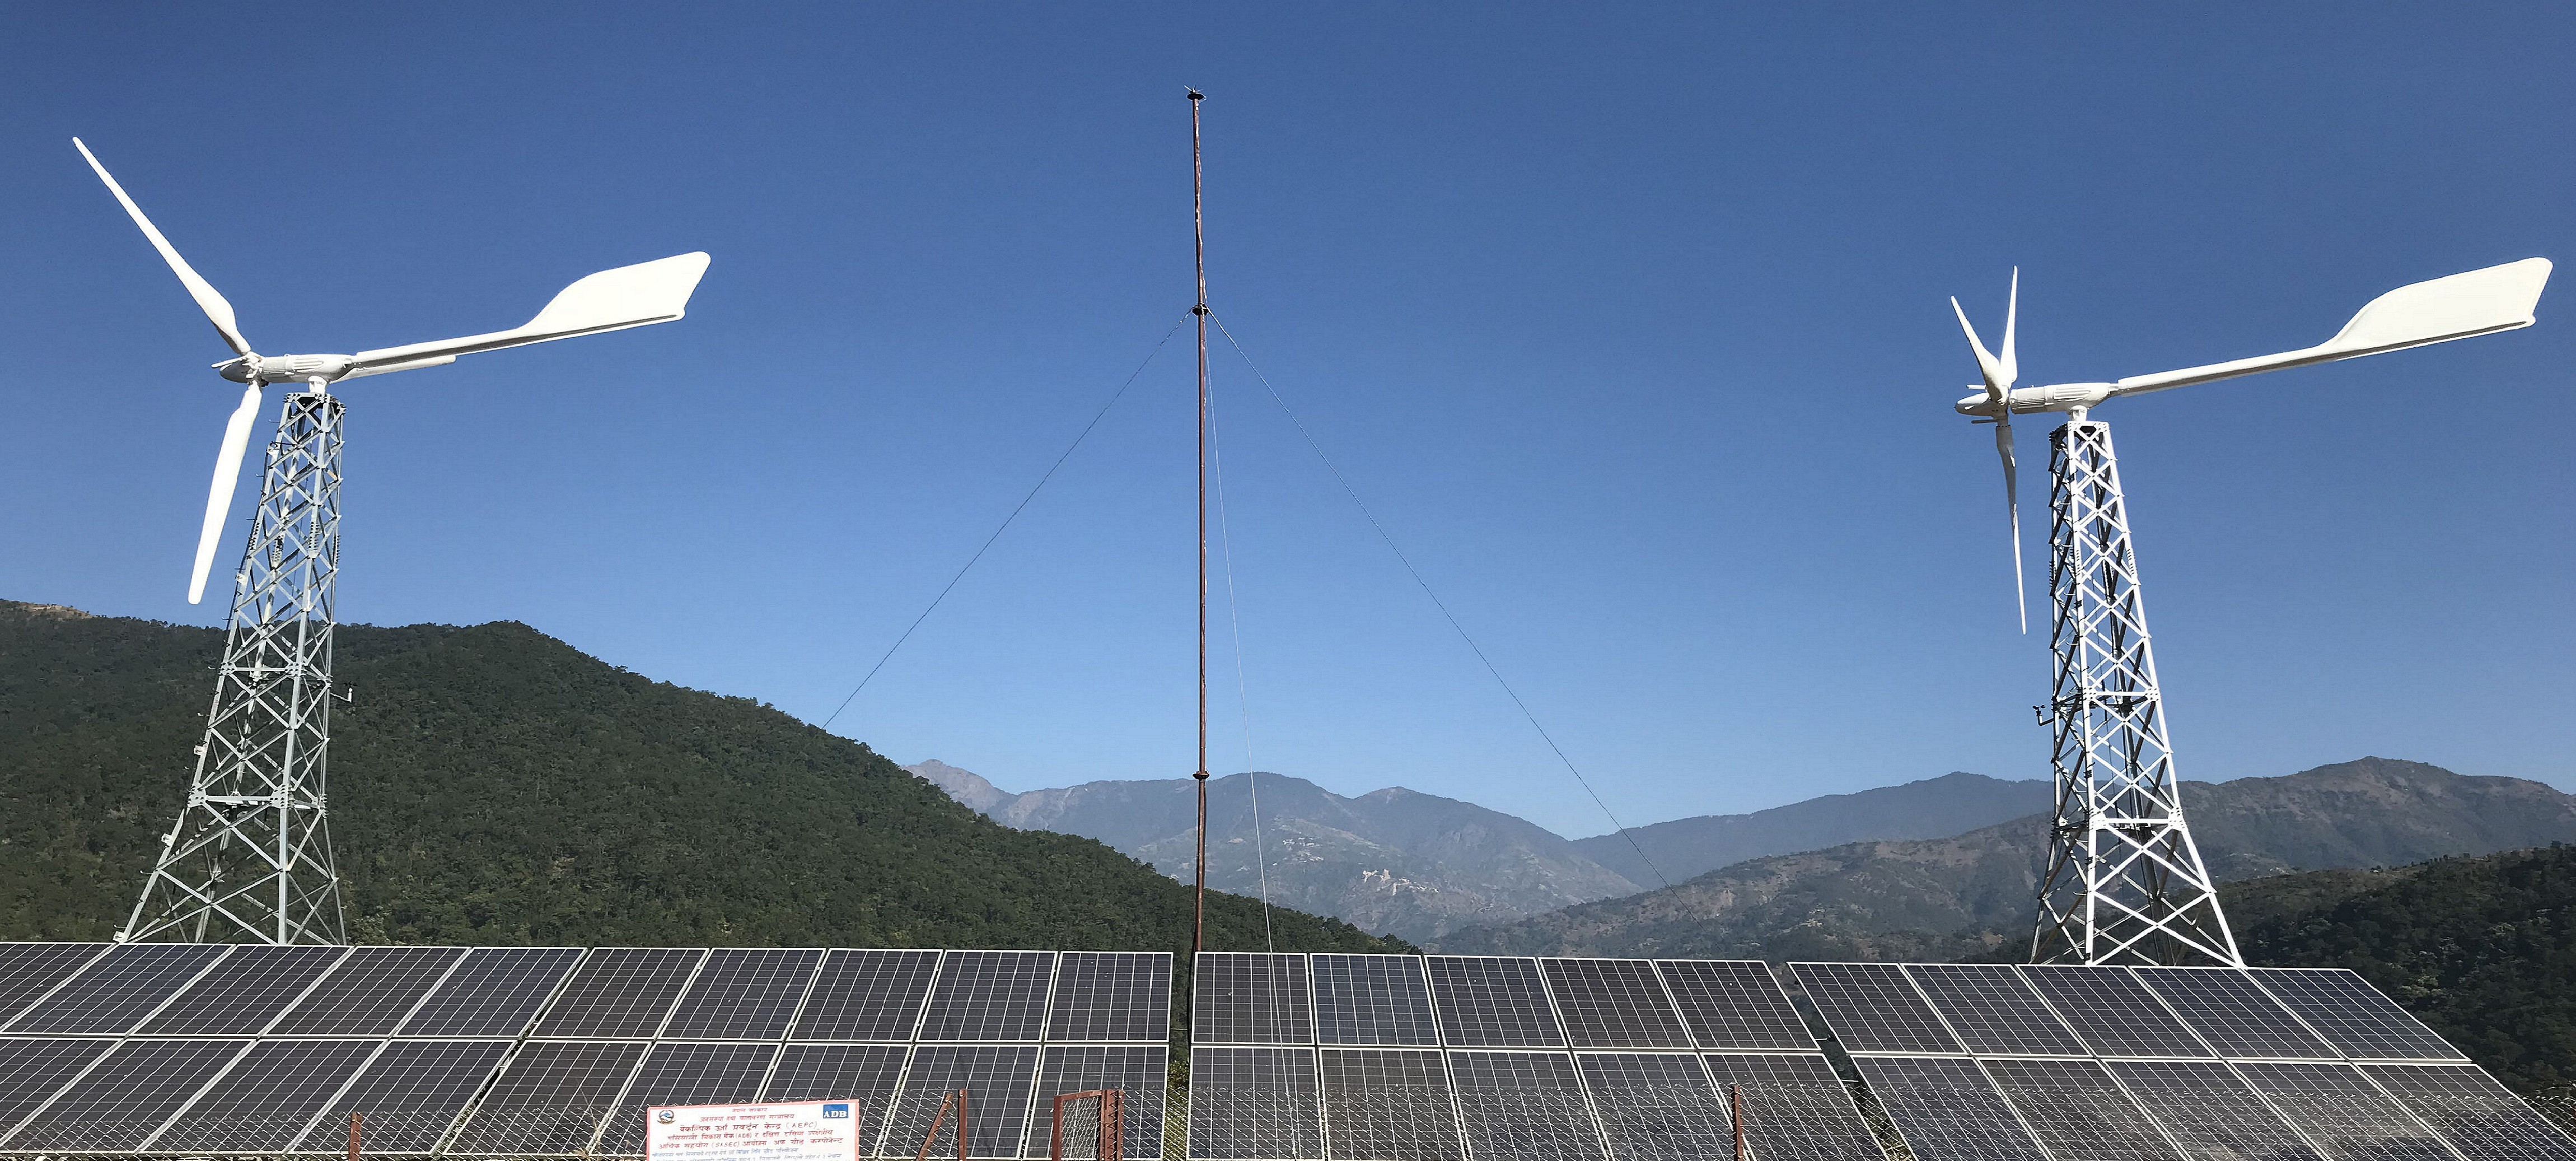 Austria on the way to one million solar rooftops